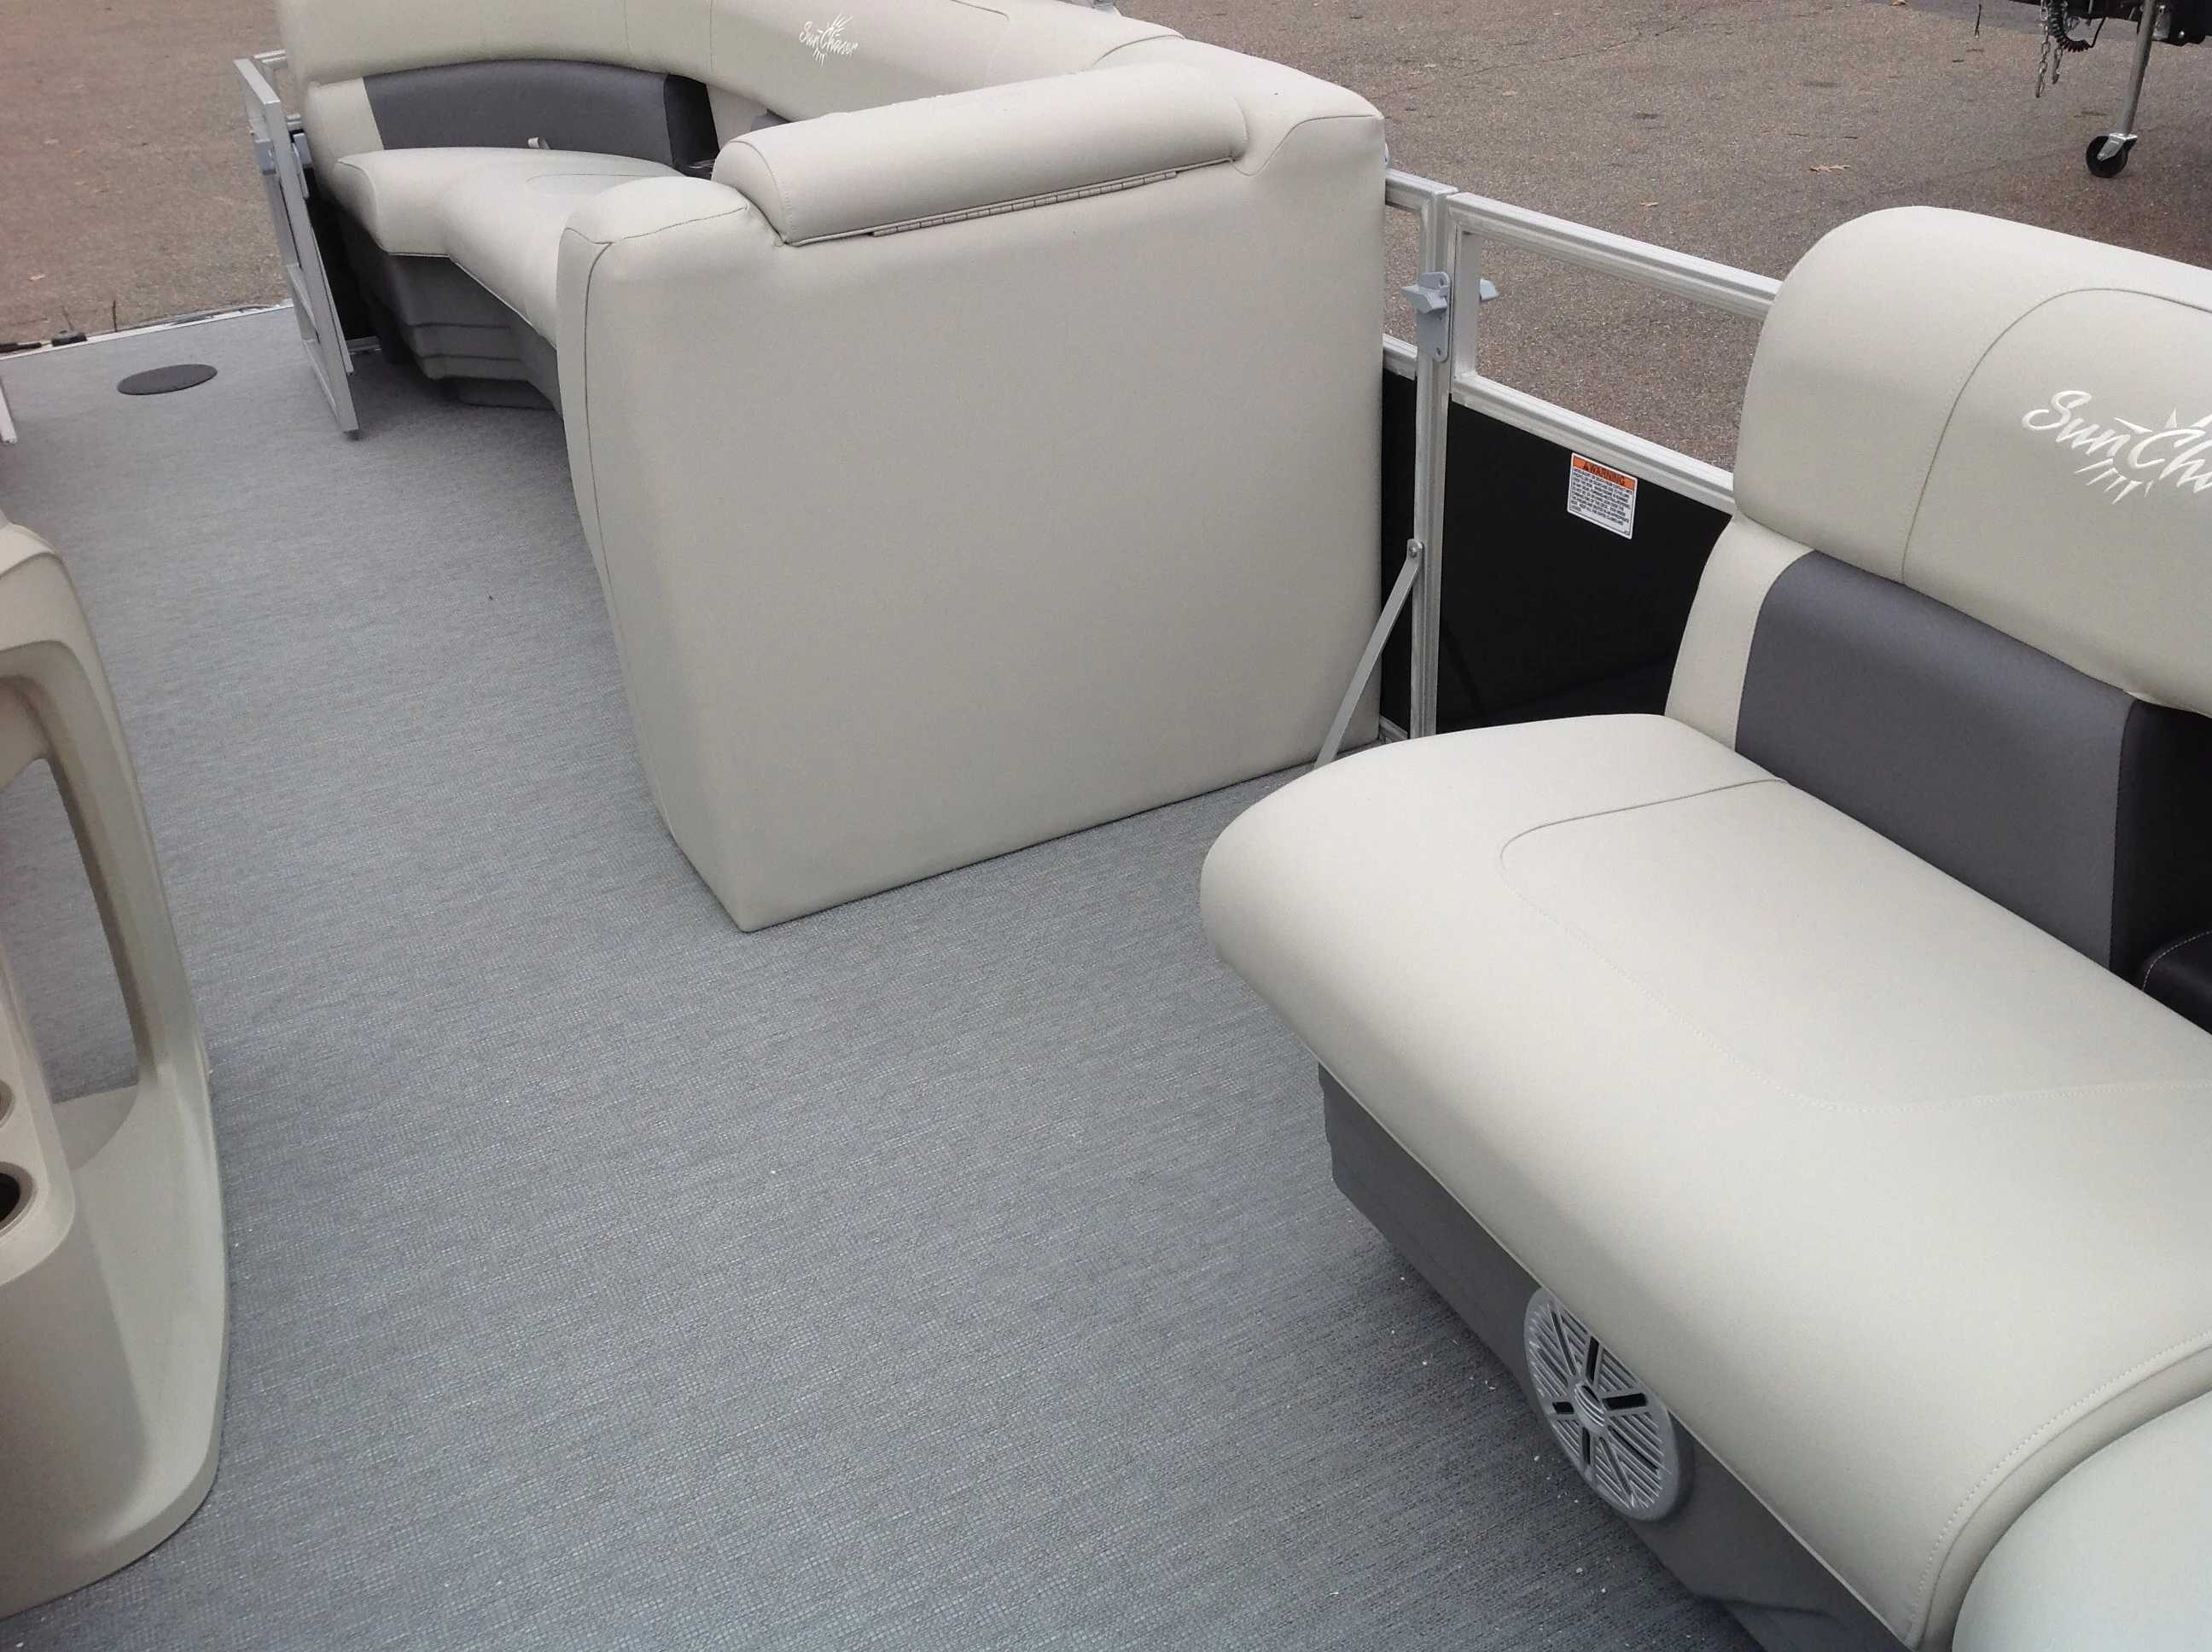 2021 SunChaser boat for sale, model of the boat is Sunchaser & Image # 5 of 10